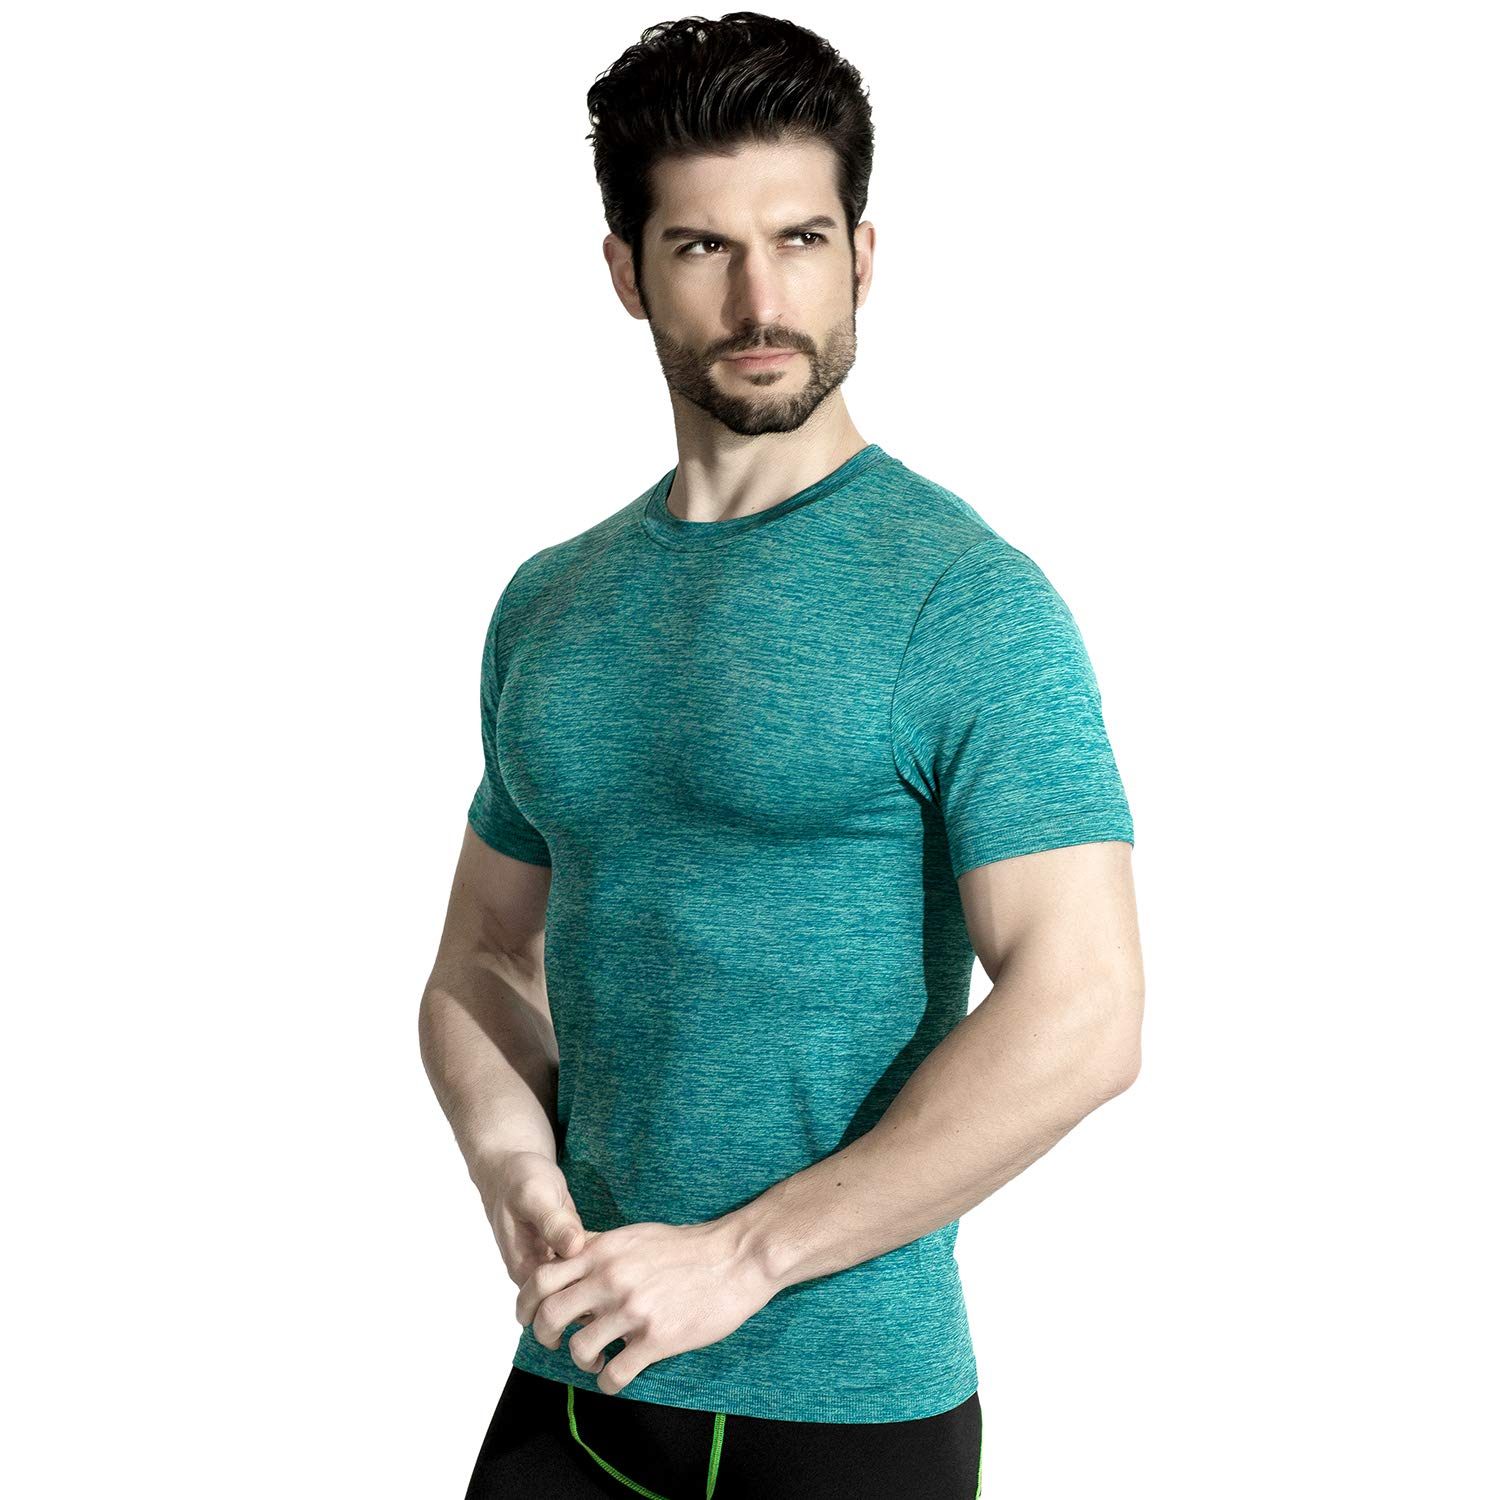 +MD Men's Short Sleeve T-Shirts Quick Dry Athletic Workout Tee for Sports Fitness